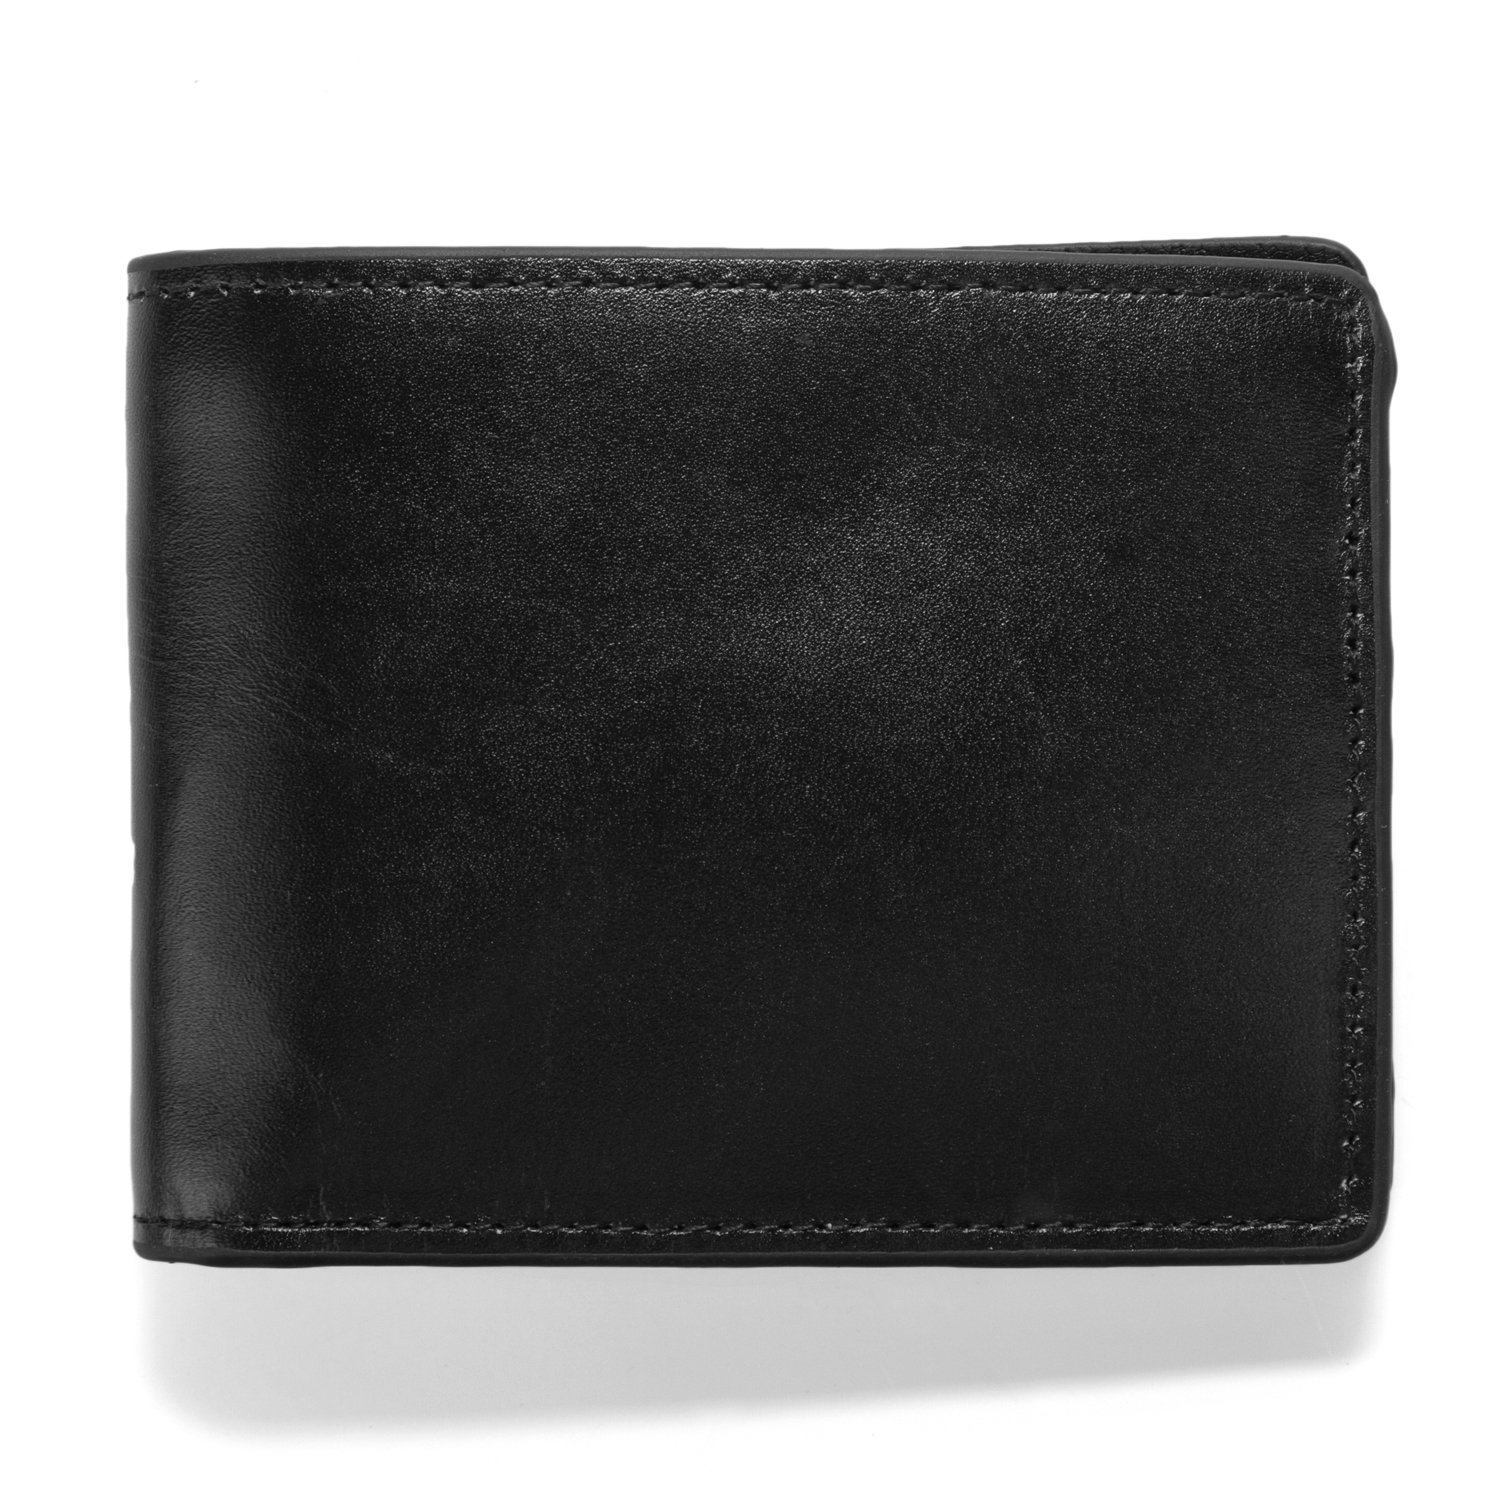 Leather Wallet Havana - Black